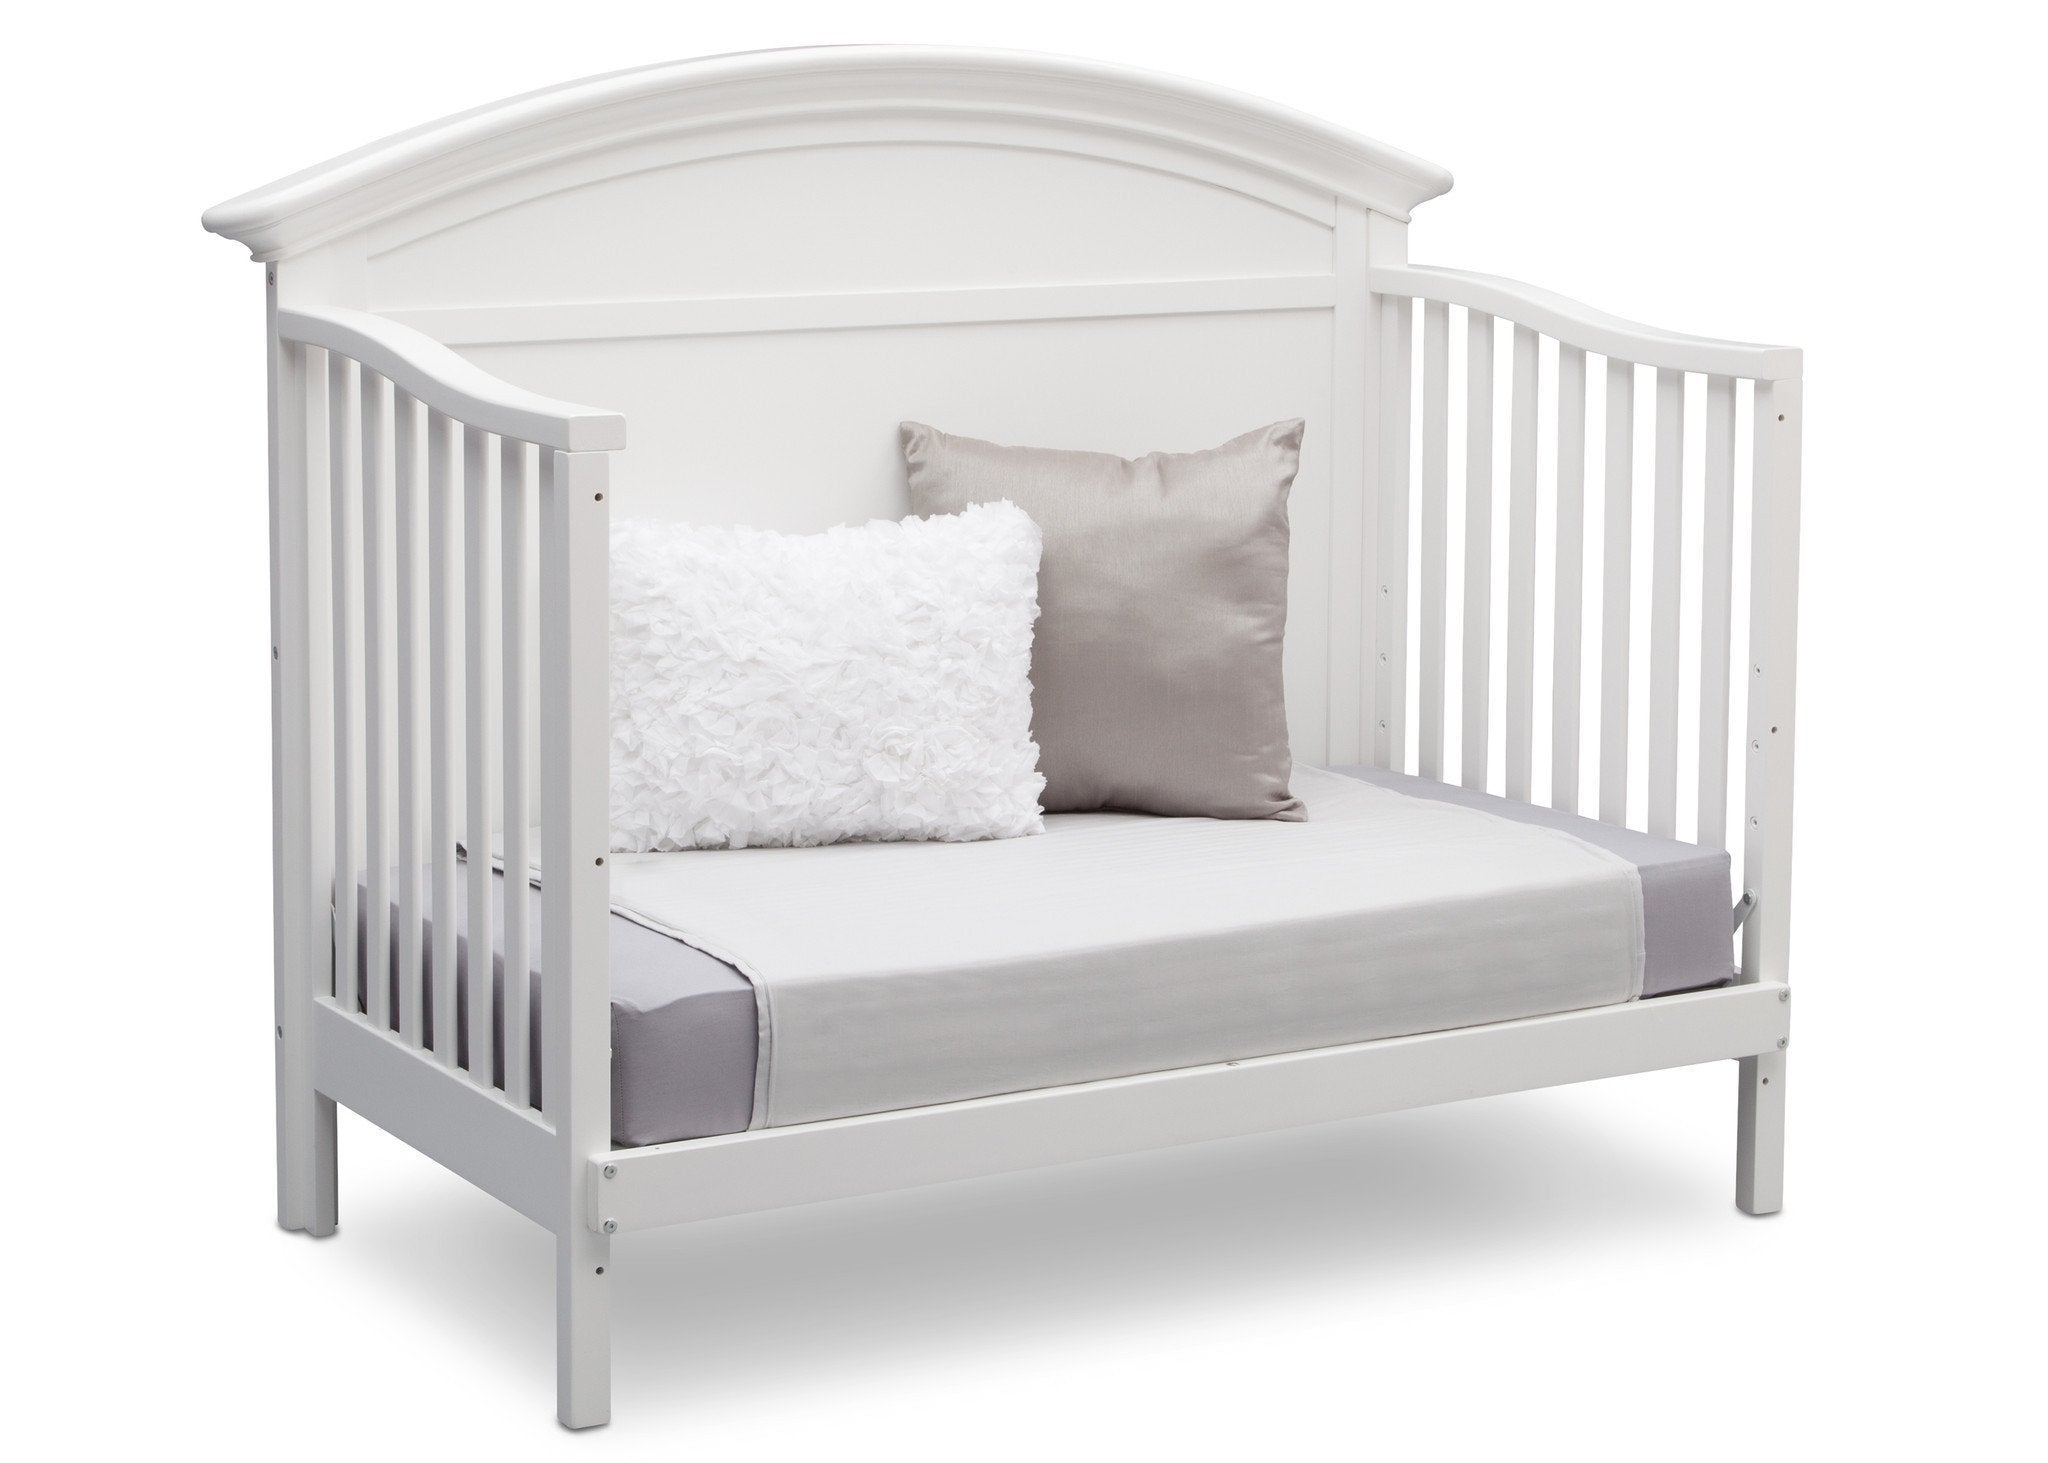 Serta Bianca (130) Adelaide 4-in-1 Crib, Side View with Toddler Bed Conversion b6b